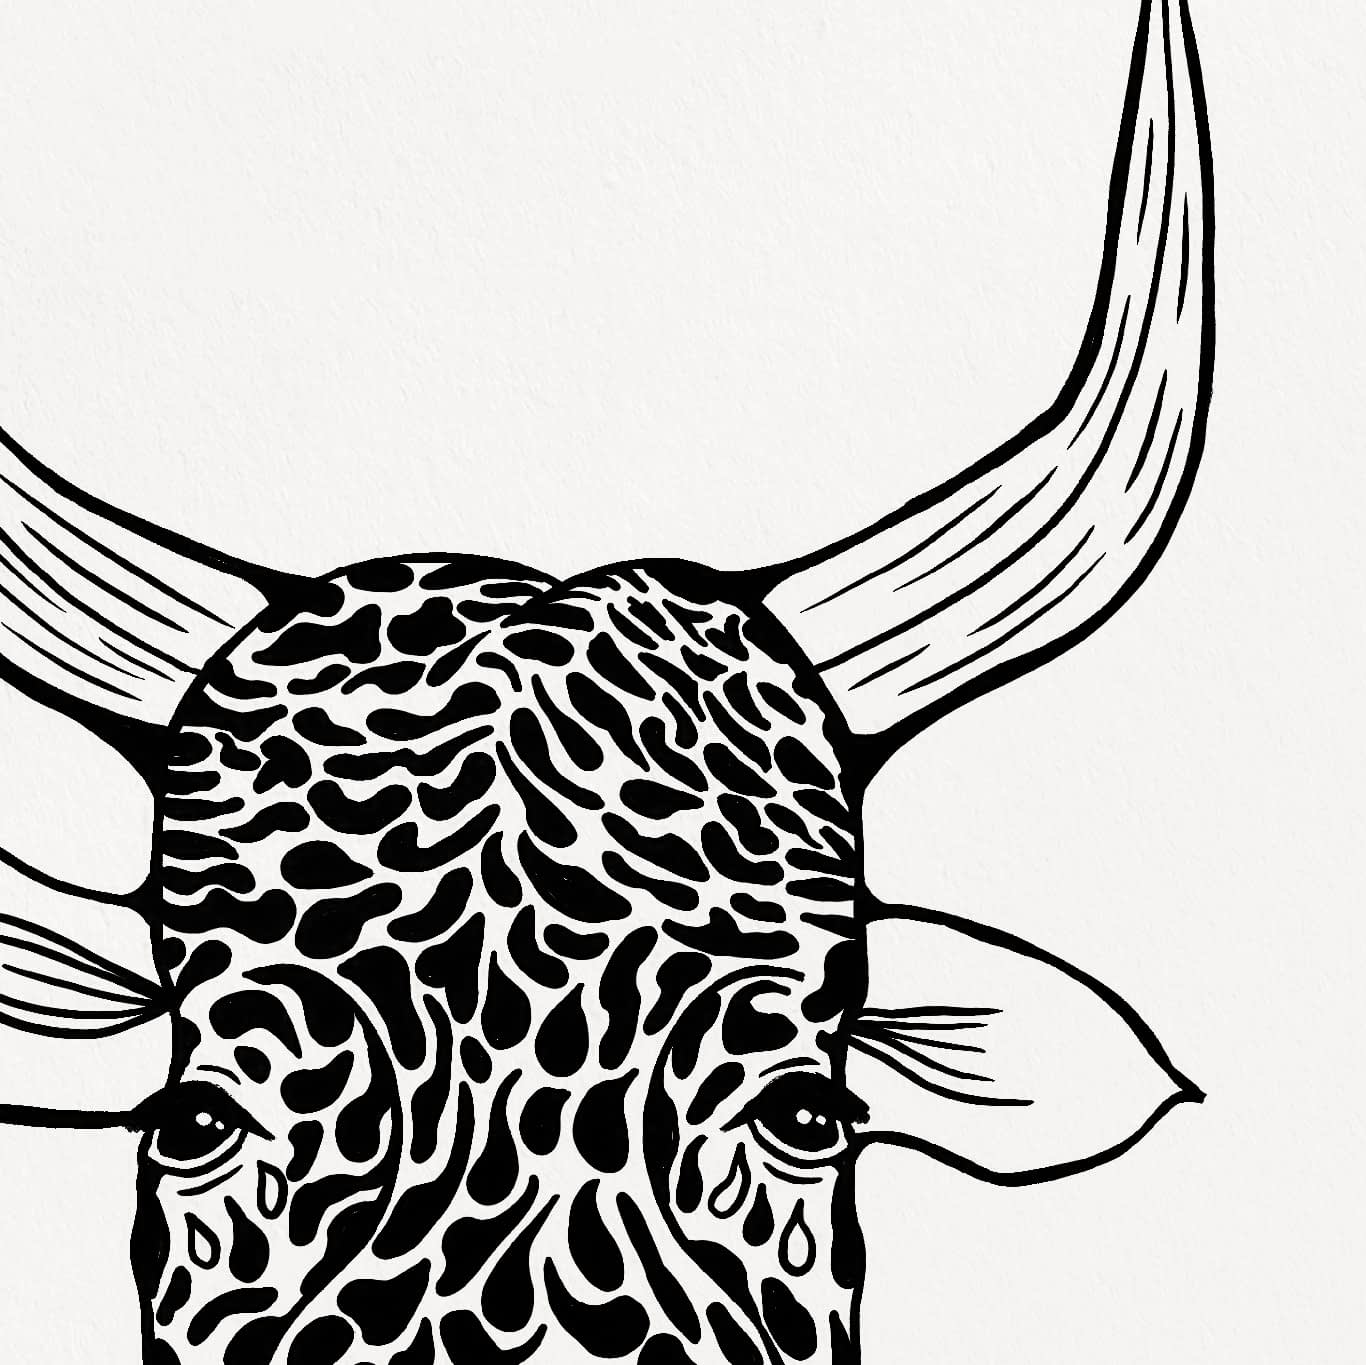 Cow with Tears Print Zoomed